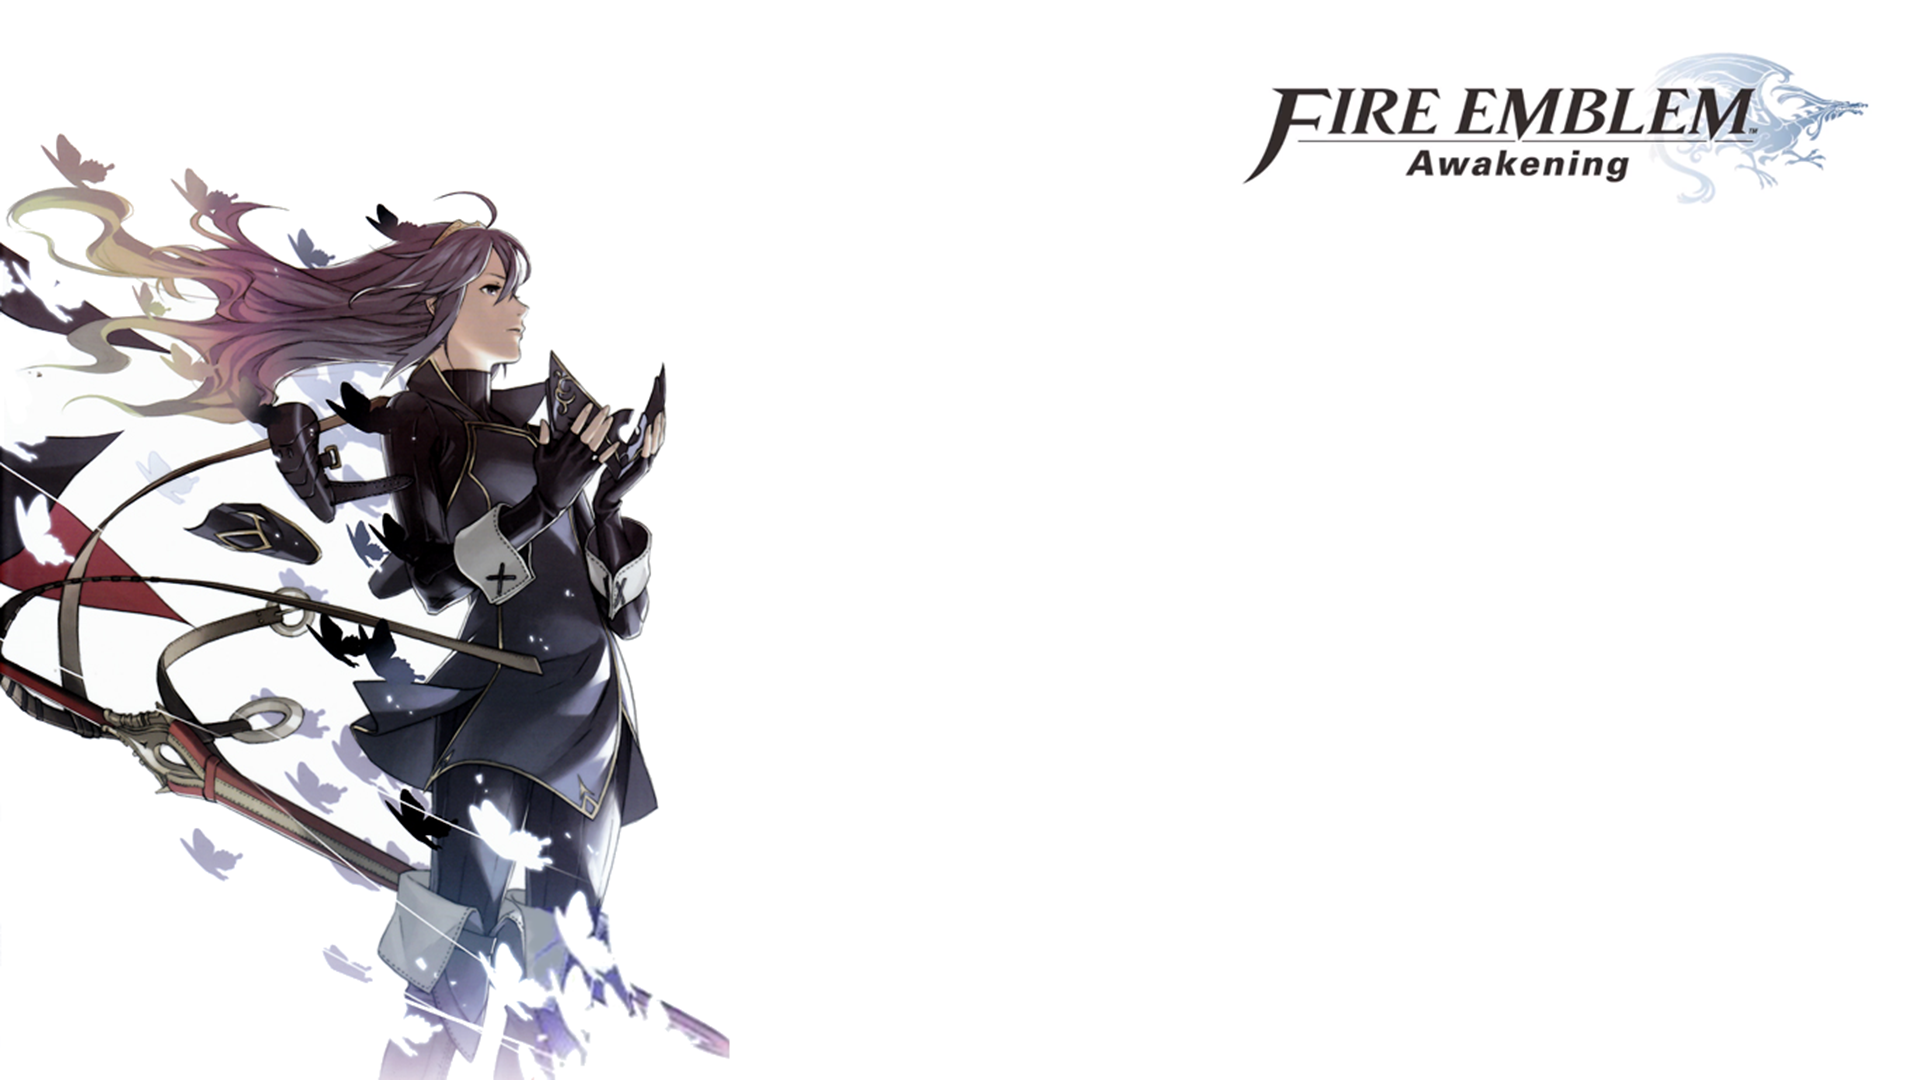 Fire Emblem Awakening Wallpaper HD